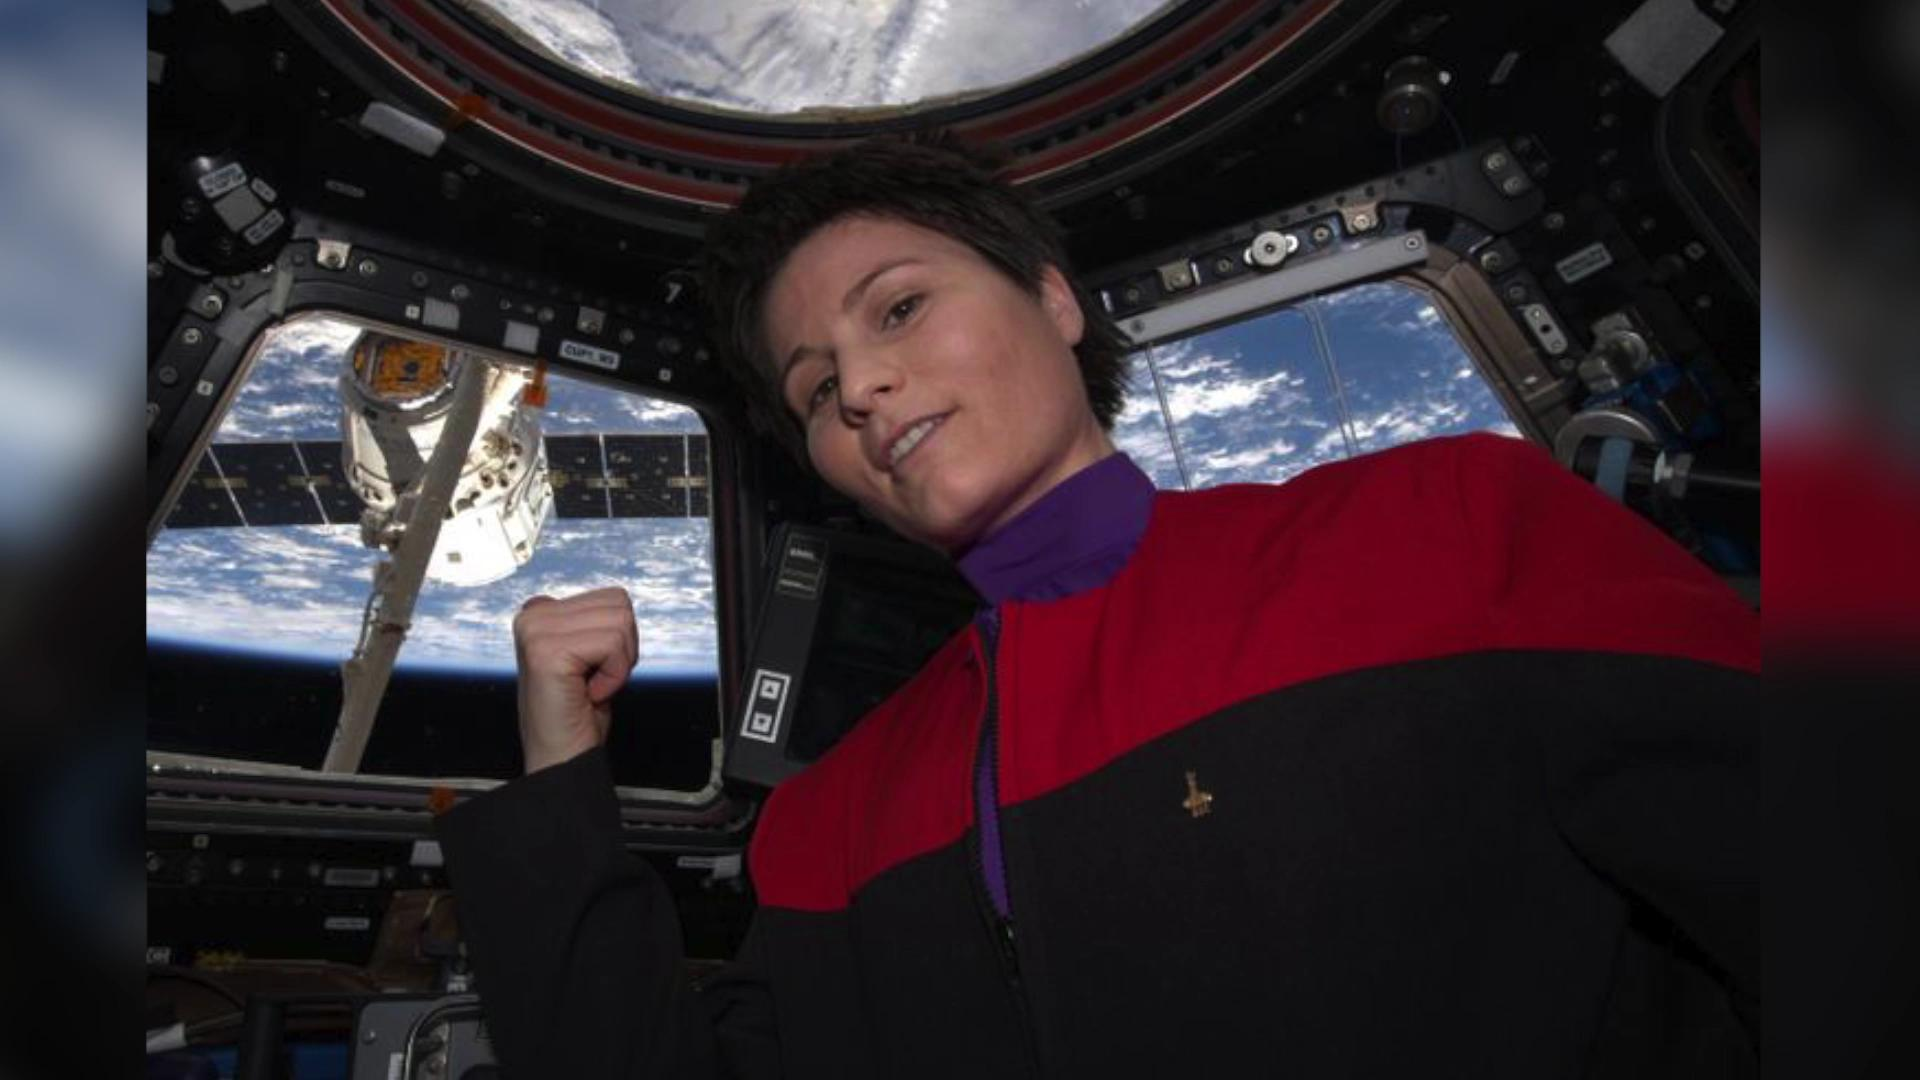 Astronaut dons 'Star Trek' uniform on International Space Station